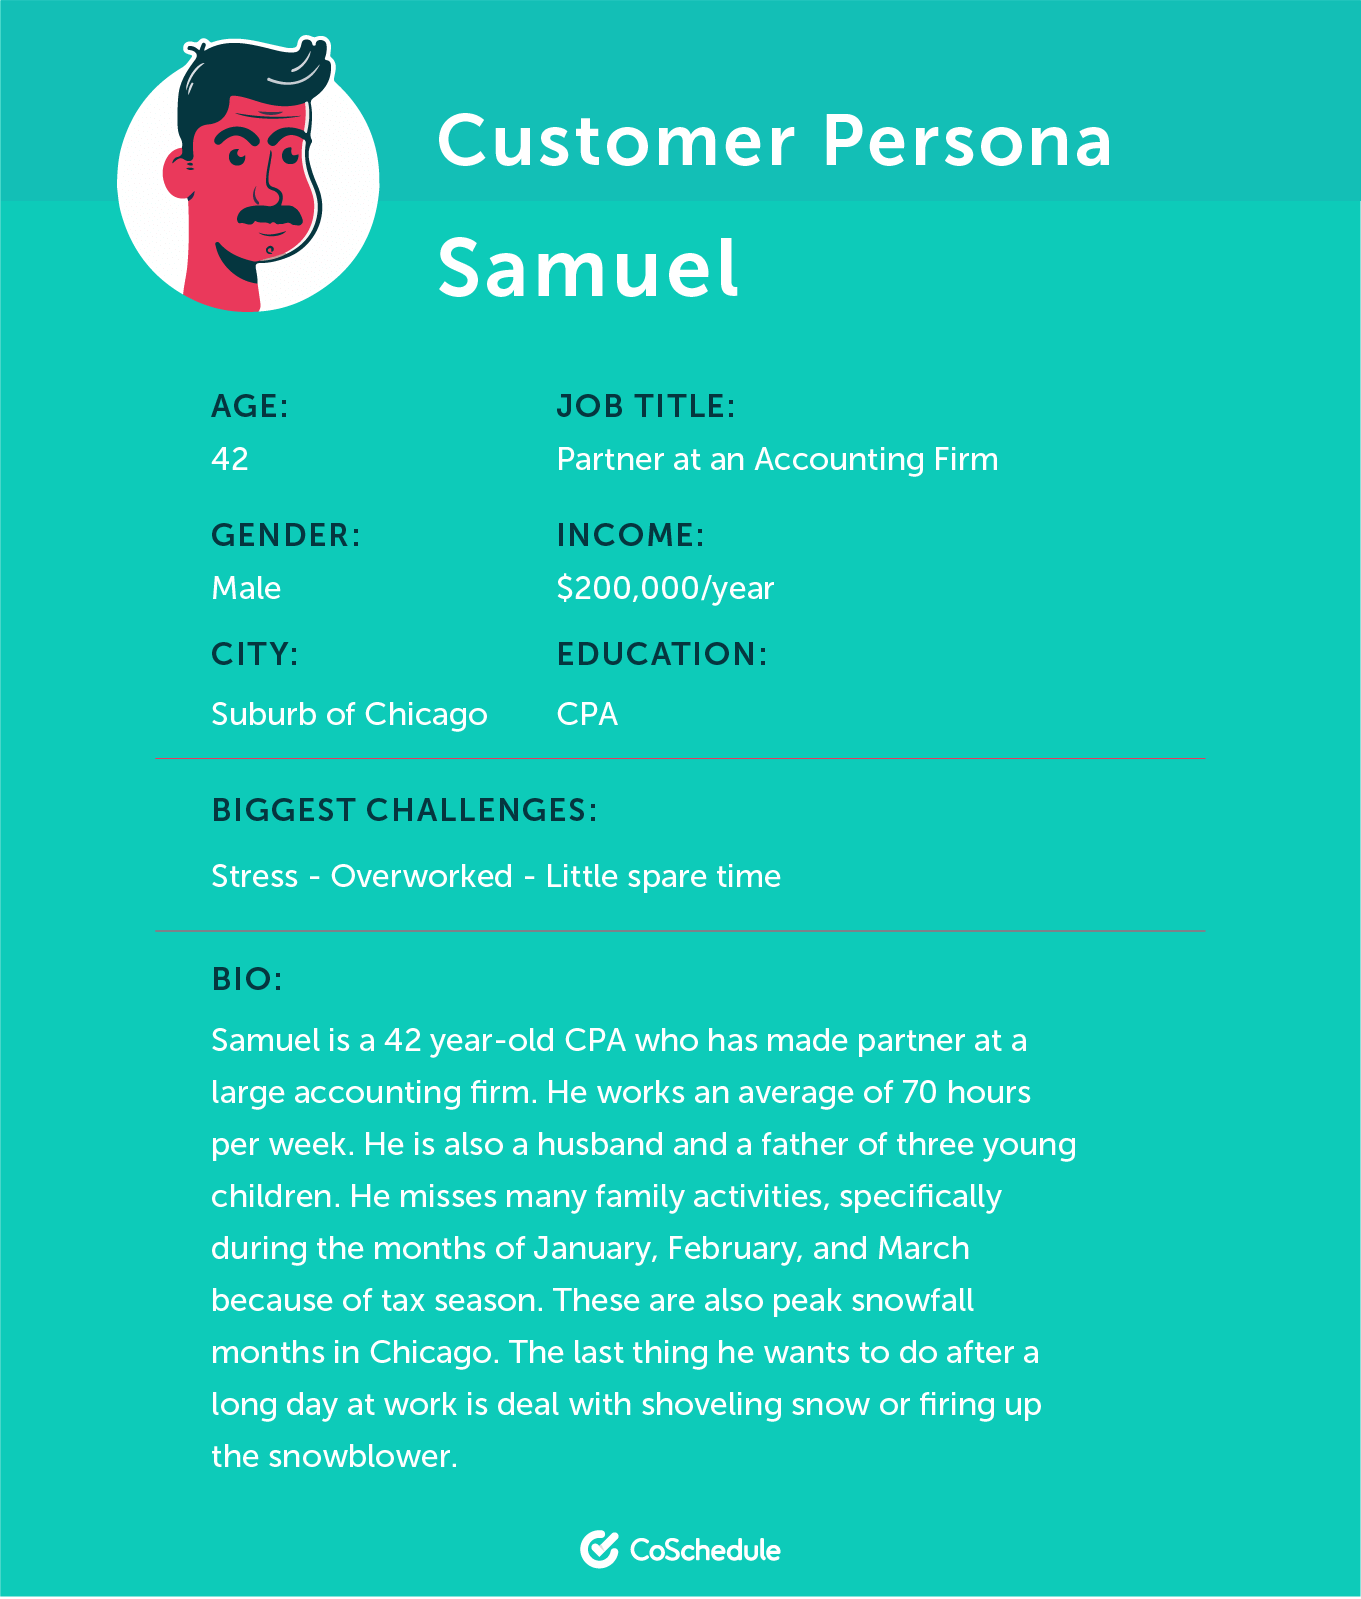 Characteristics of customer persona, Samuel